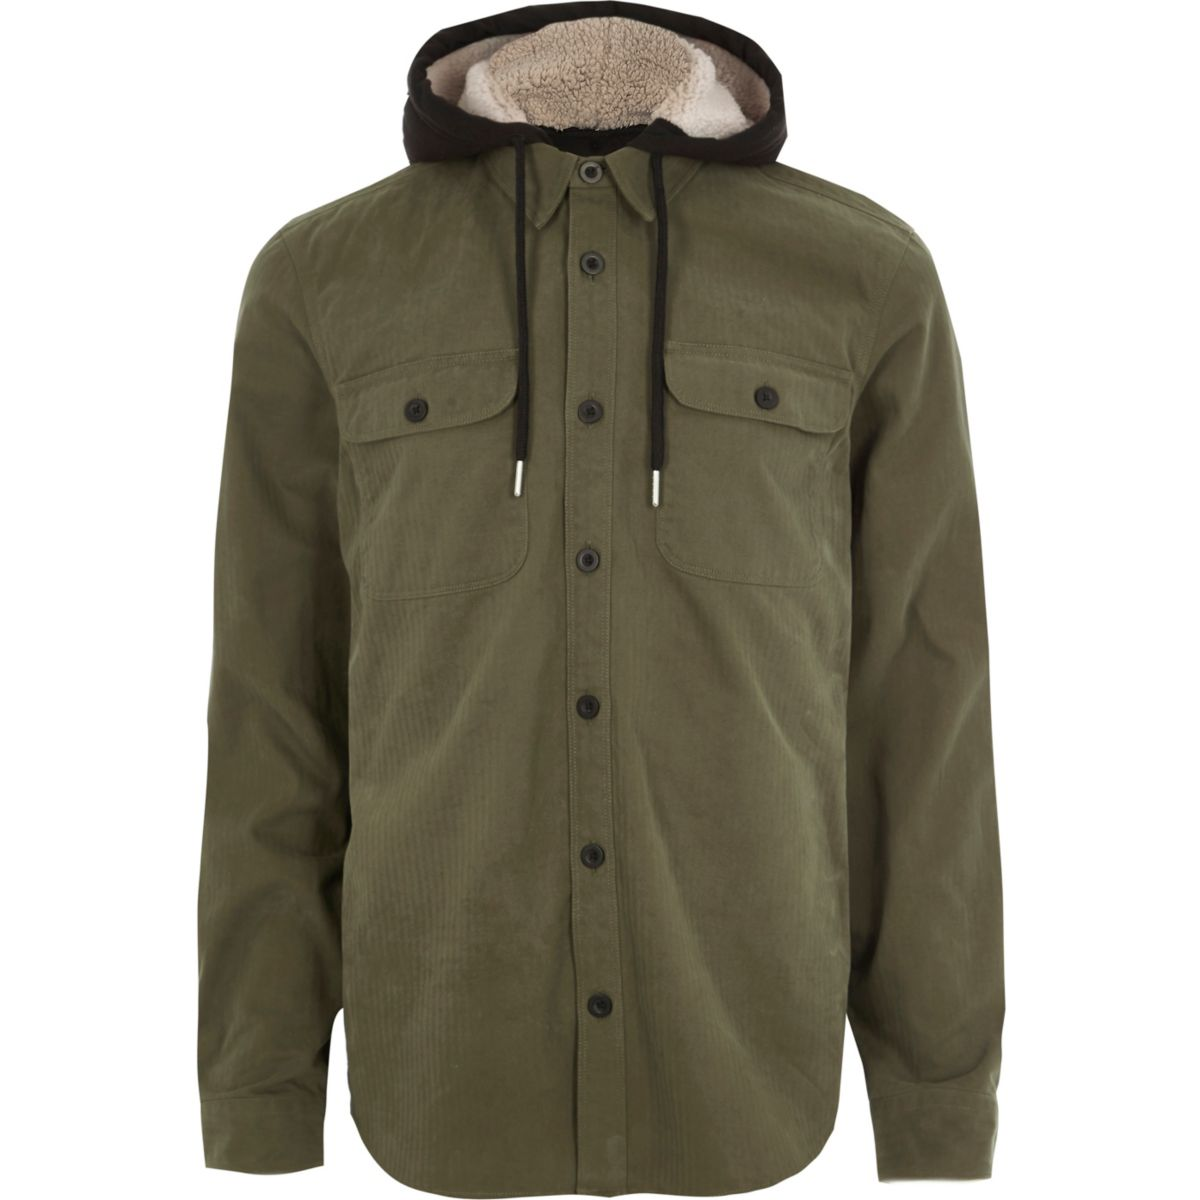 Khaki long sleeve fleece lined hood shirt